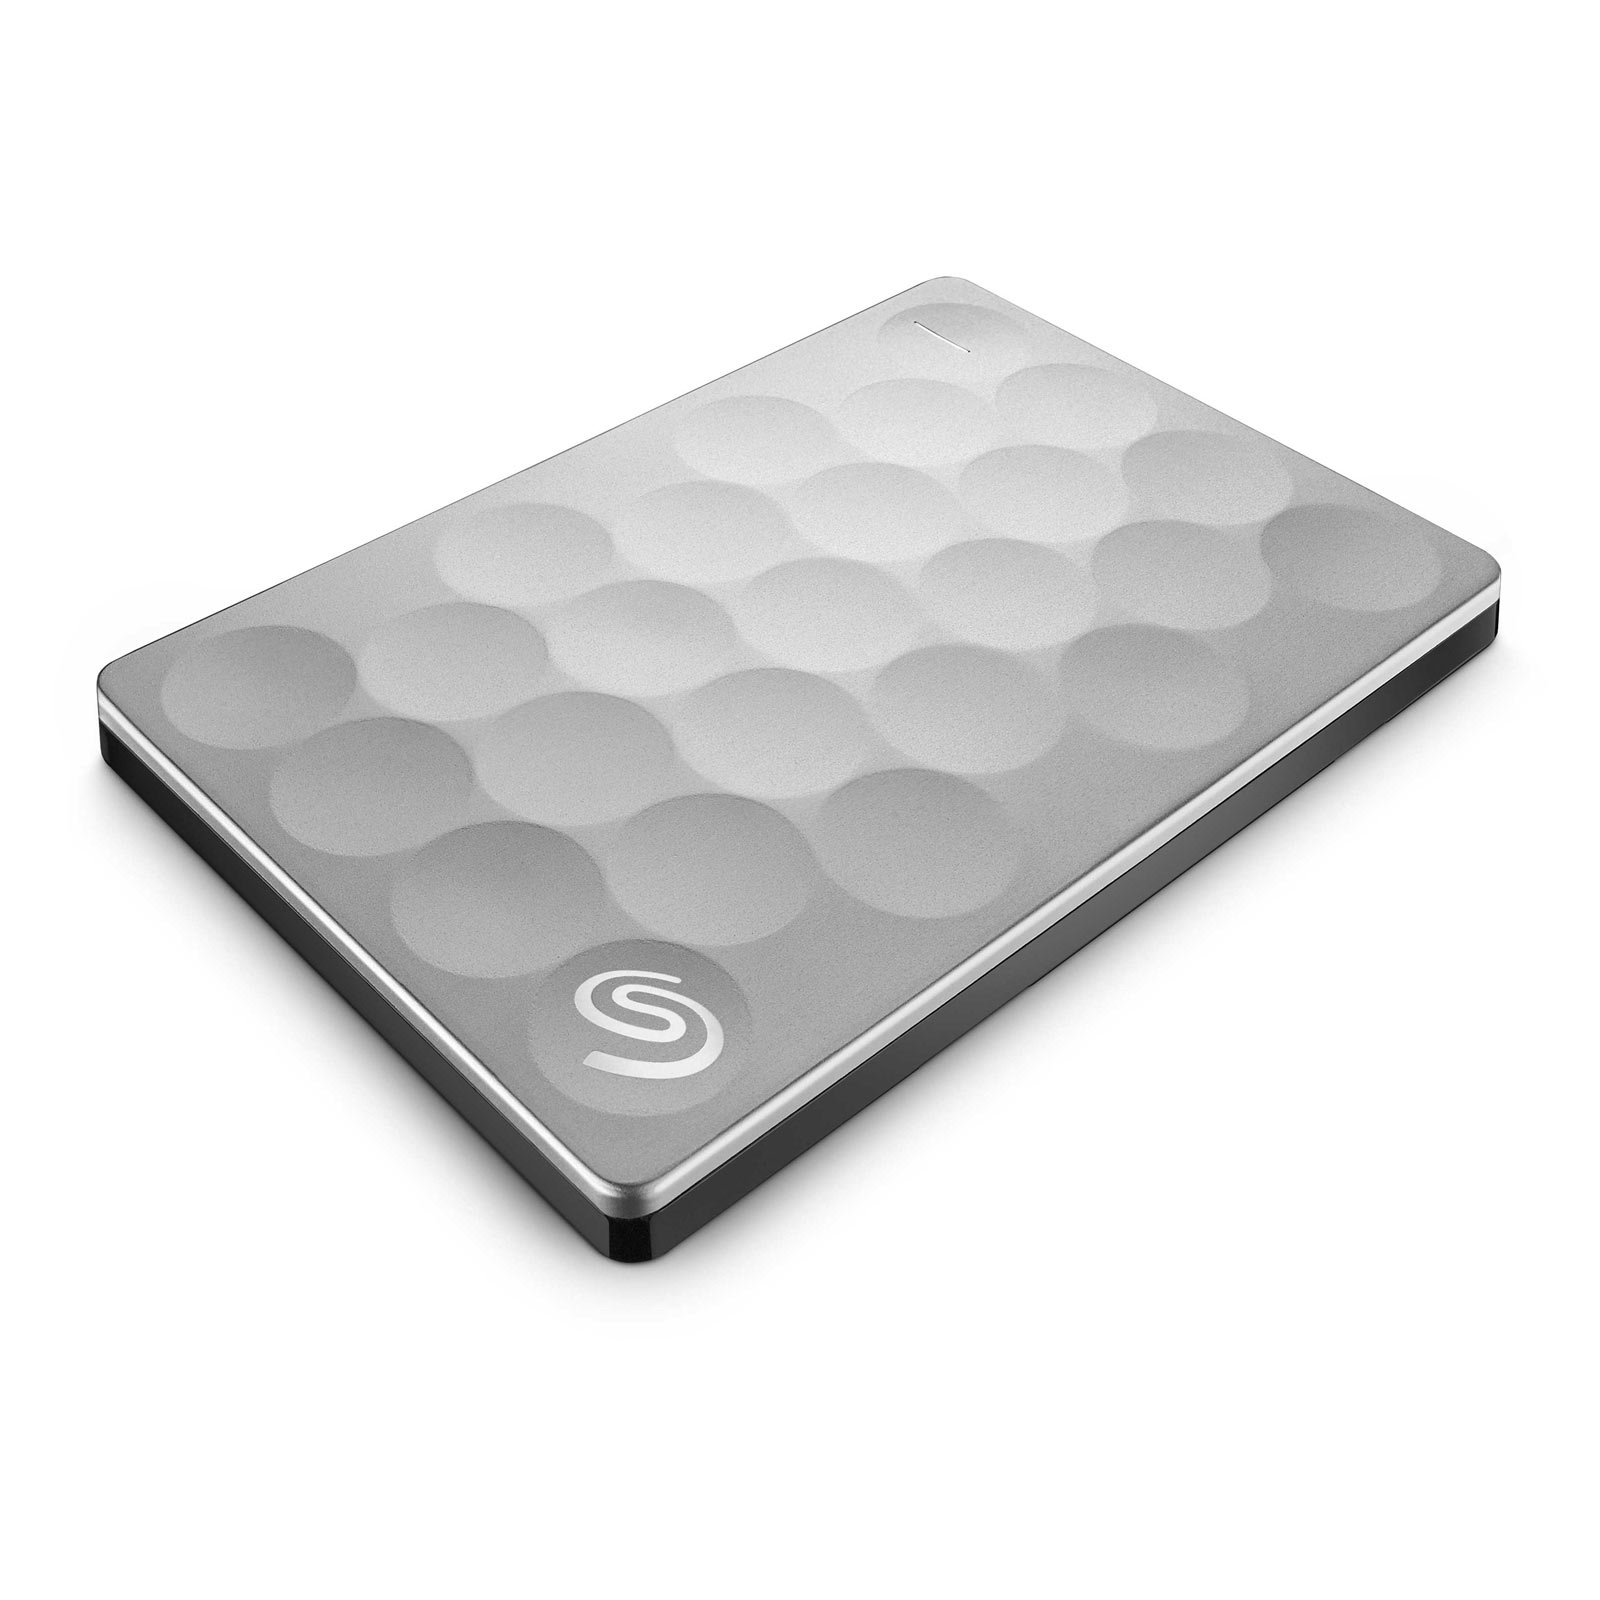 seagate backup plus ultra slim 2 to platine usb 3 0. Black Bedroom Furniture Sets. Home Design Ideas